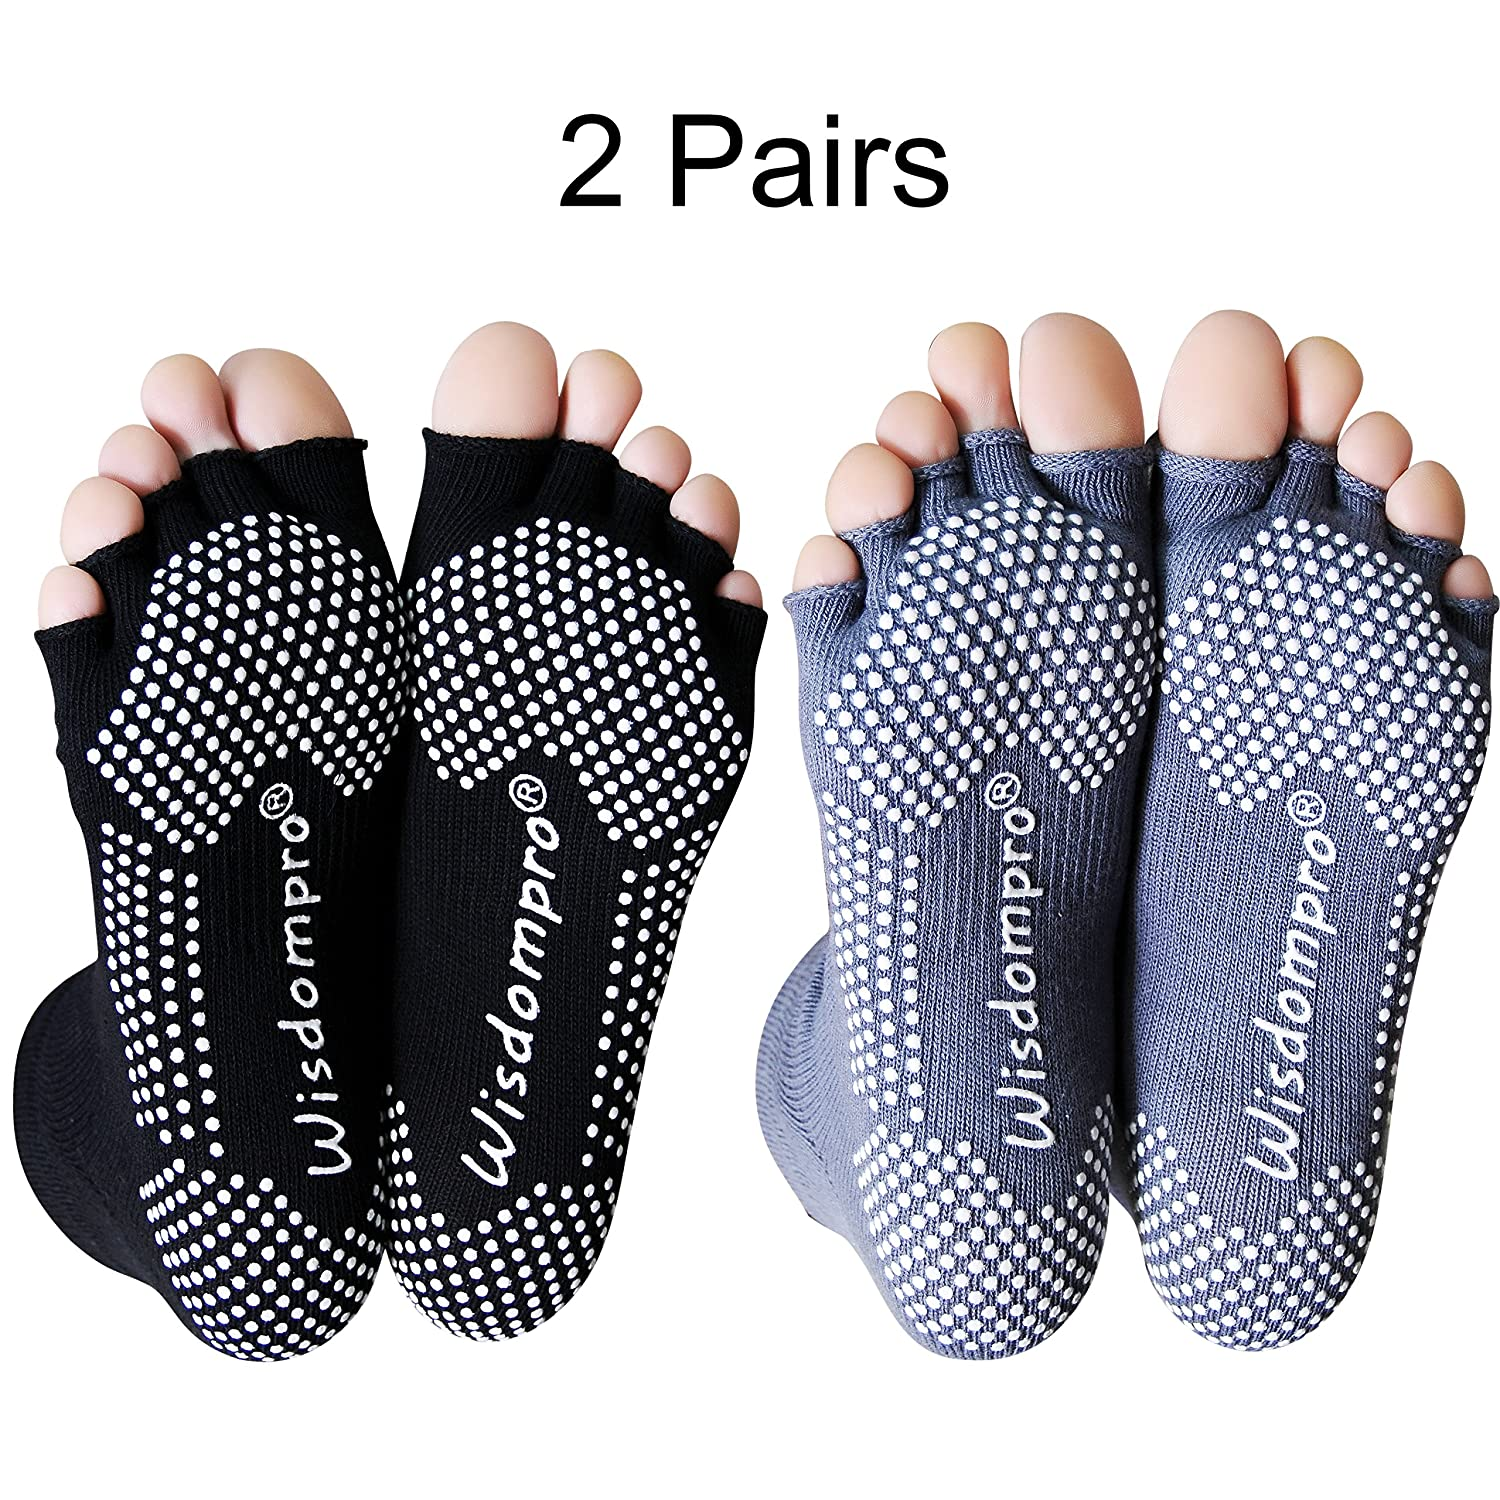 2 Pairs Toeless Half Toe Yoga Socks with Anti Slip Grip for Women & Men Wisdompro